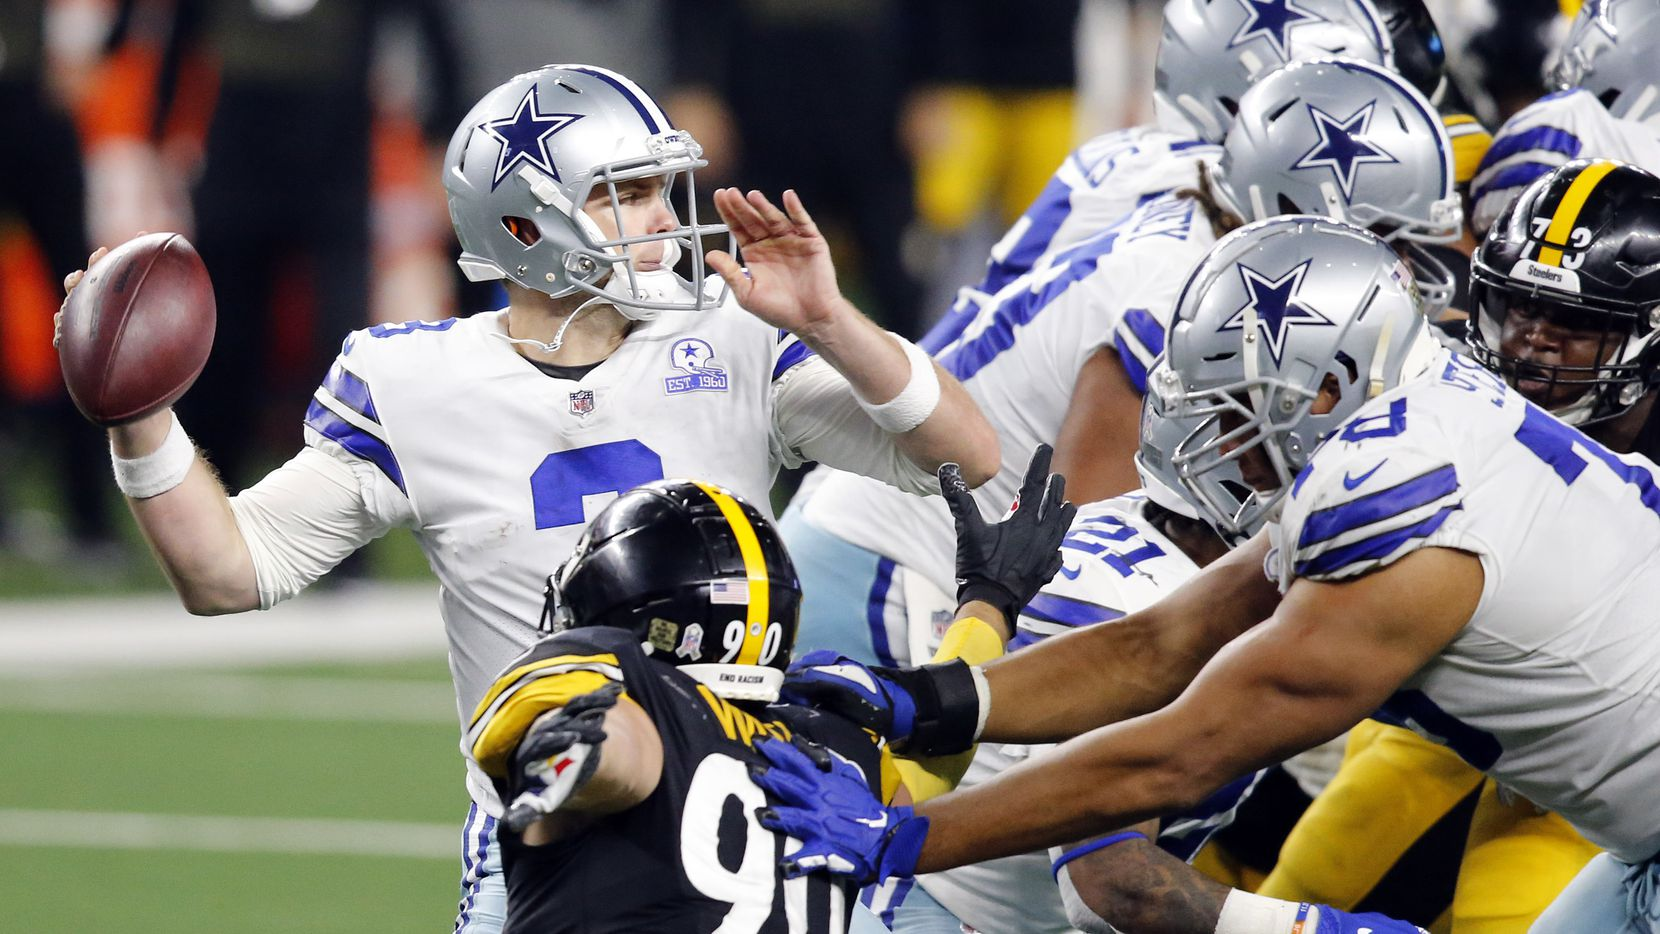 Dallas Cowboys quarterback Garrett Gilbert (3) throws from the pocket as he gets blocking from his lineman against the Pittsburgh Steelers in the fourth quarter at AT&T Stadium in Arlington, Texas Sunday, November 8, 2020. The Cowboys lost, 24-19.